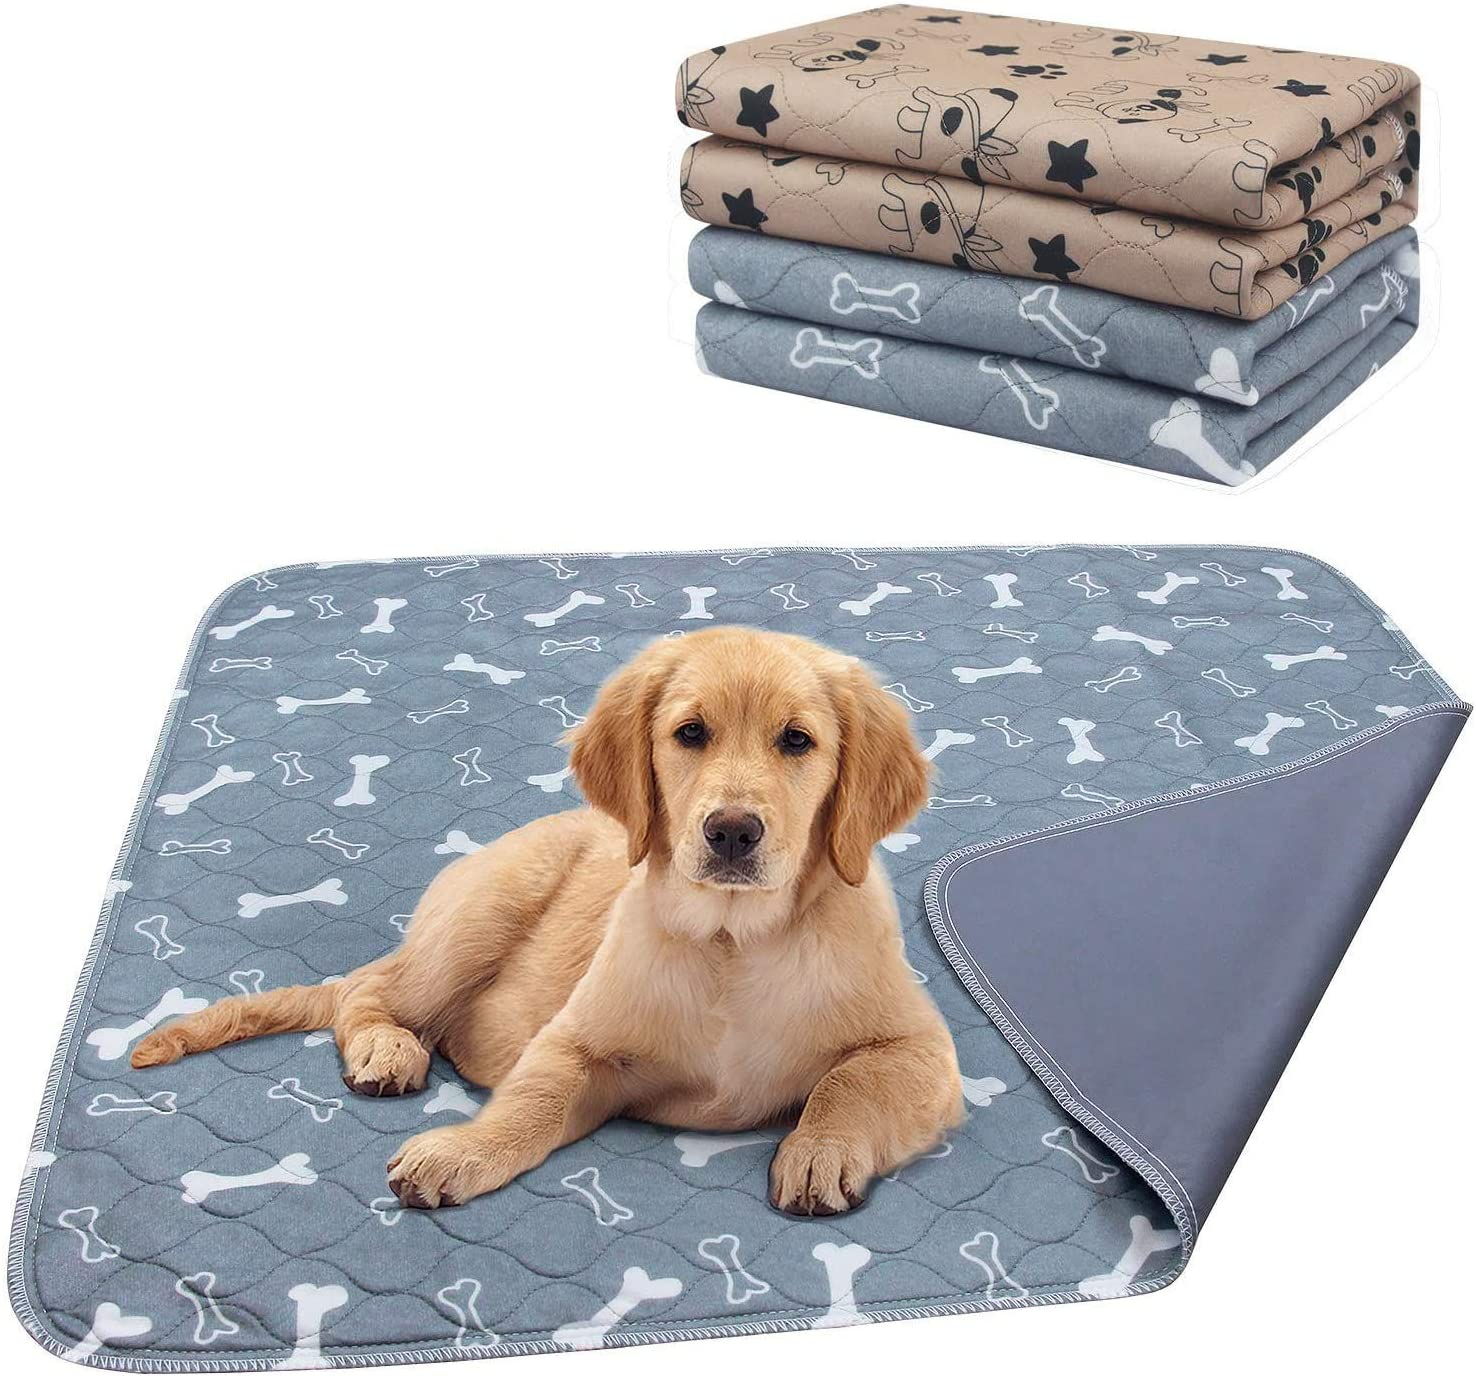 AK KYC 2 Pack Washable Pee Pads for Dogs Puppy Pads Dog Training Pad Waterproof Reusable Fast Absorbent Travel for Dog(35''x 31'') : Pet Supplies